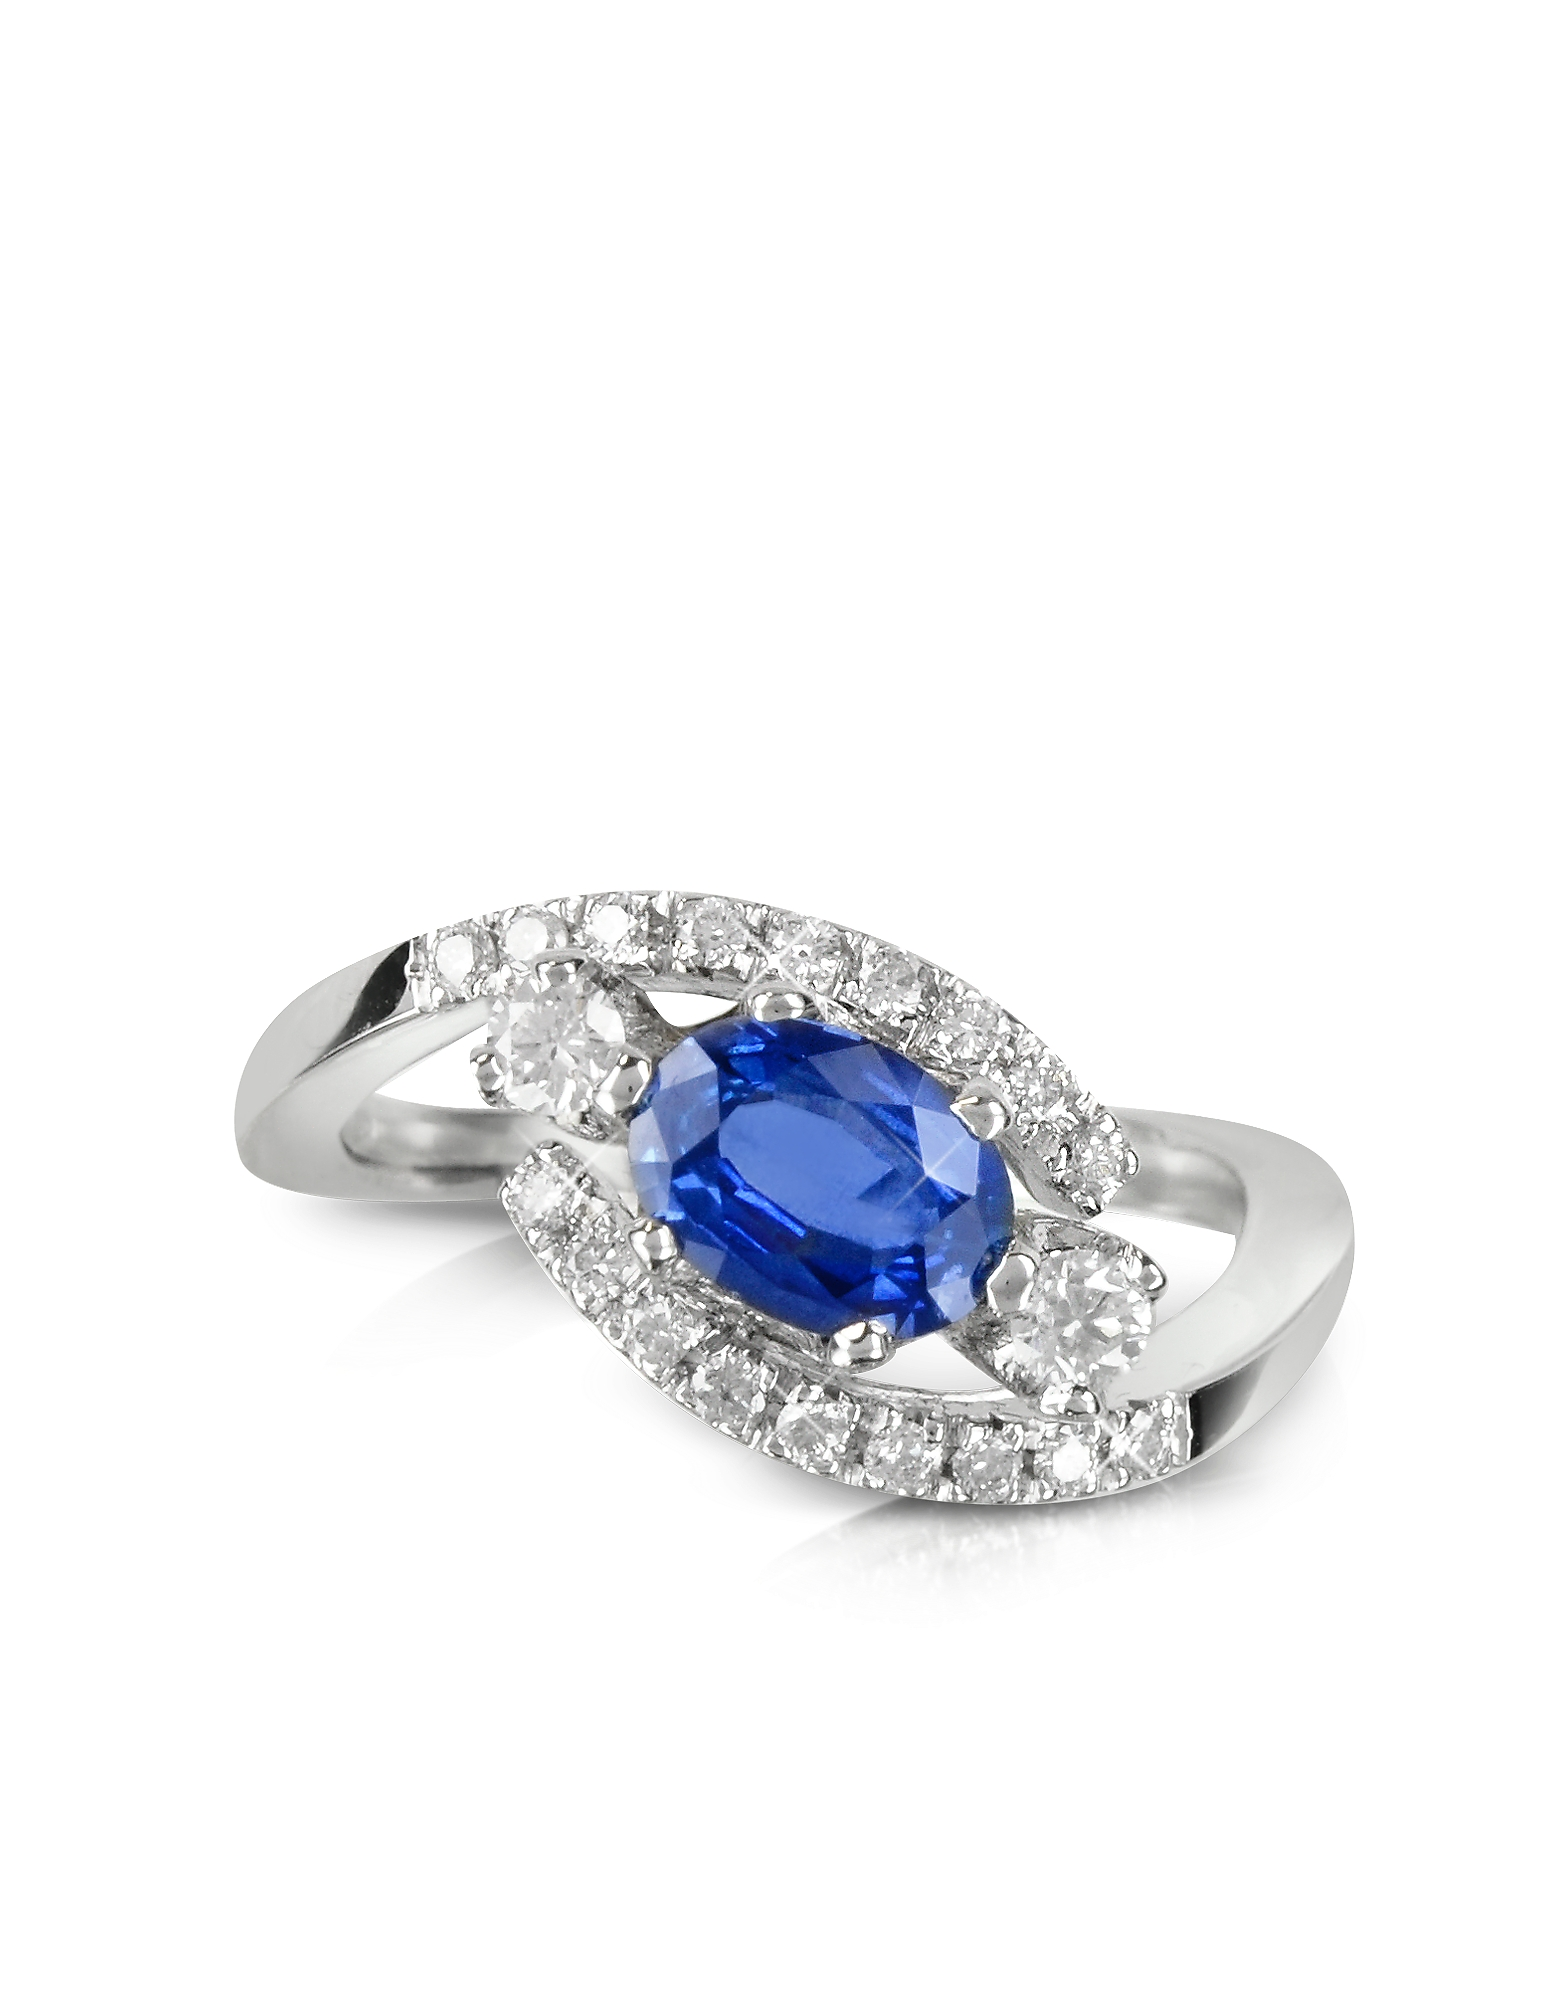 Forzieri Rings, Sapphire and Diamond 18K White Gold Ring